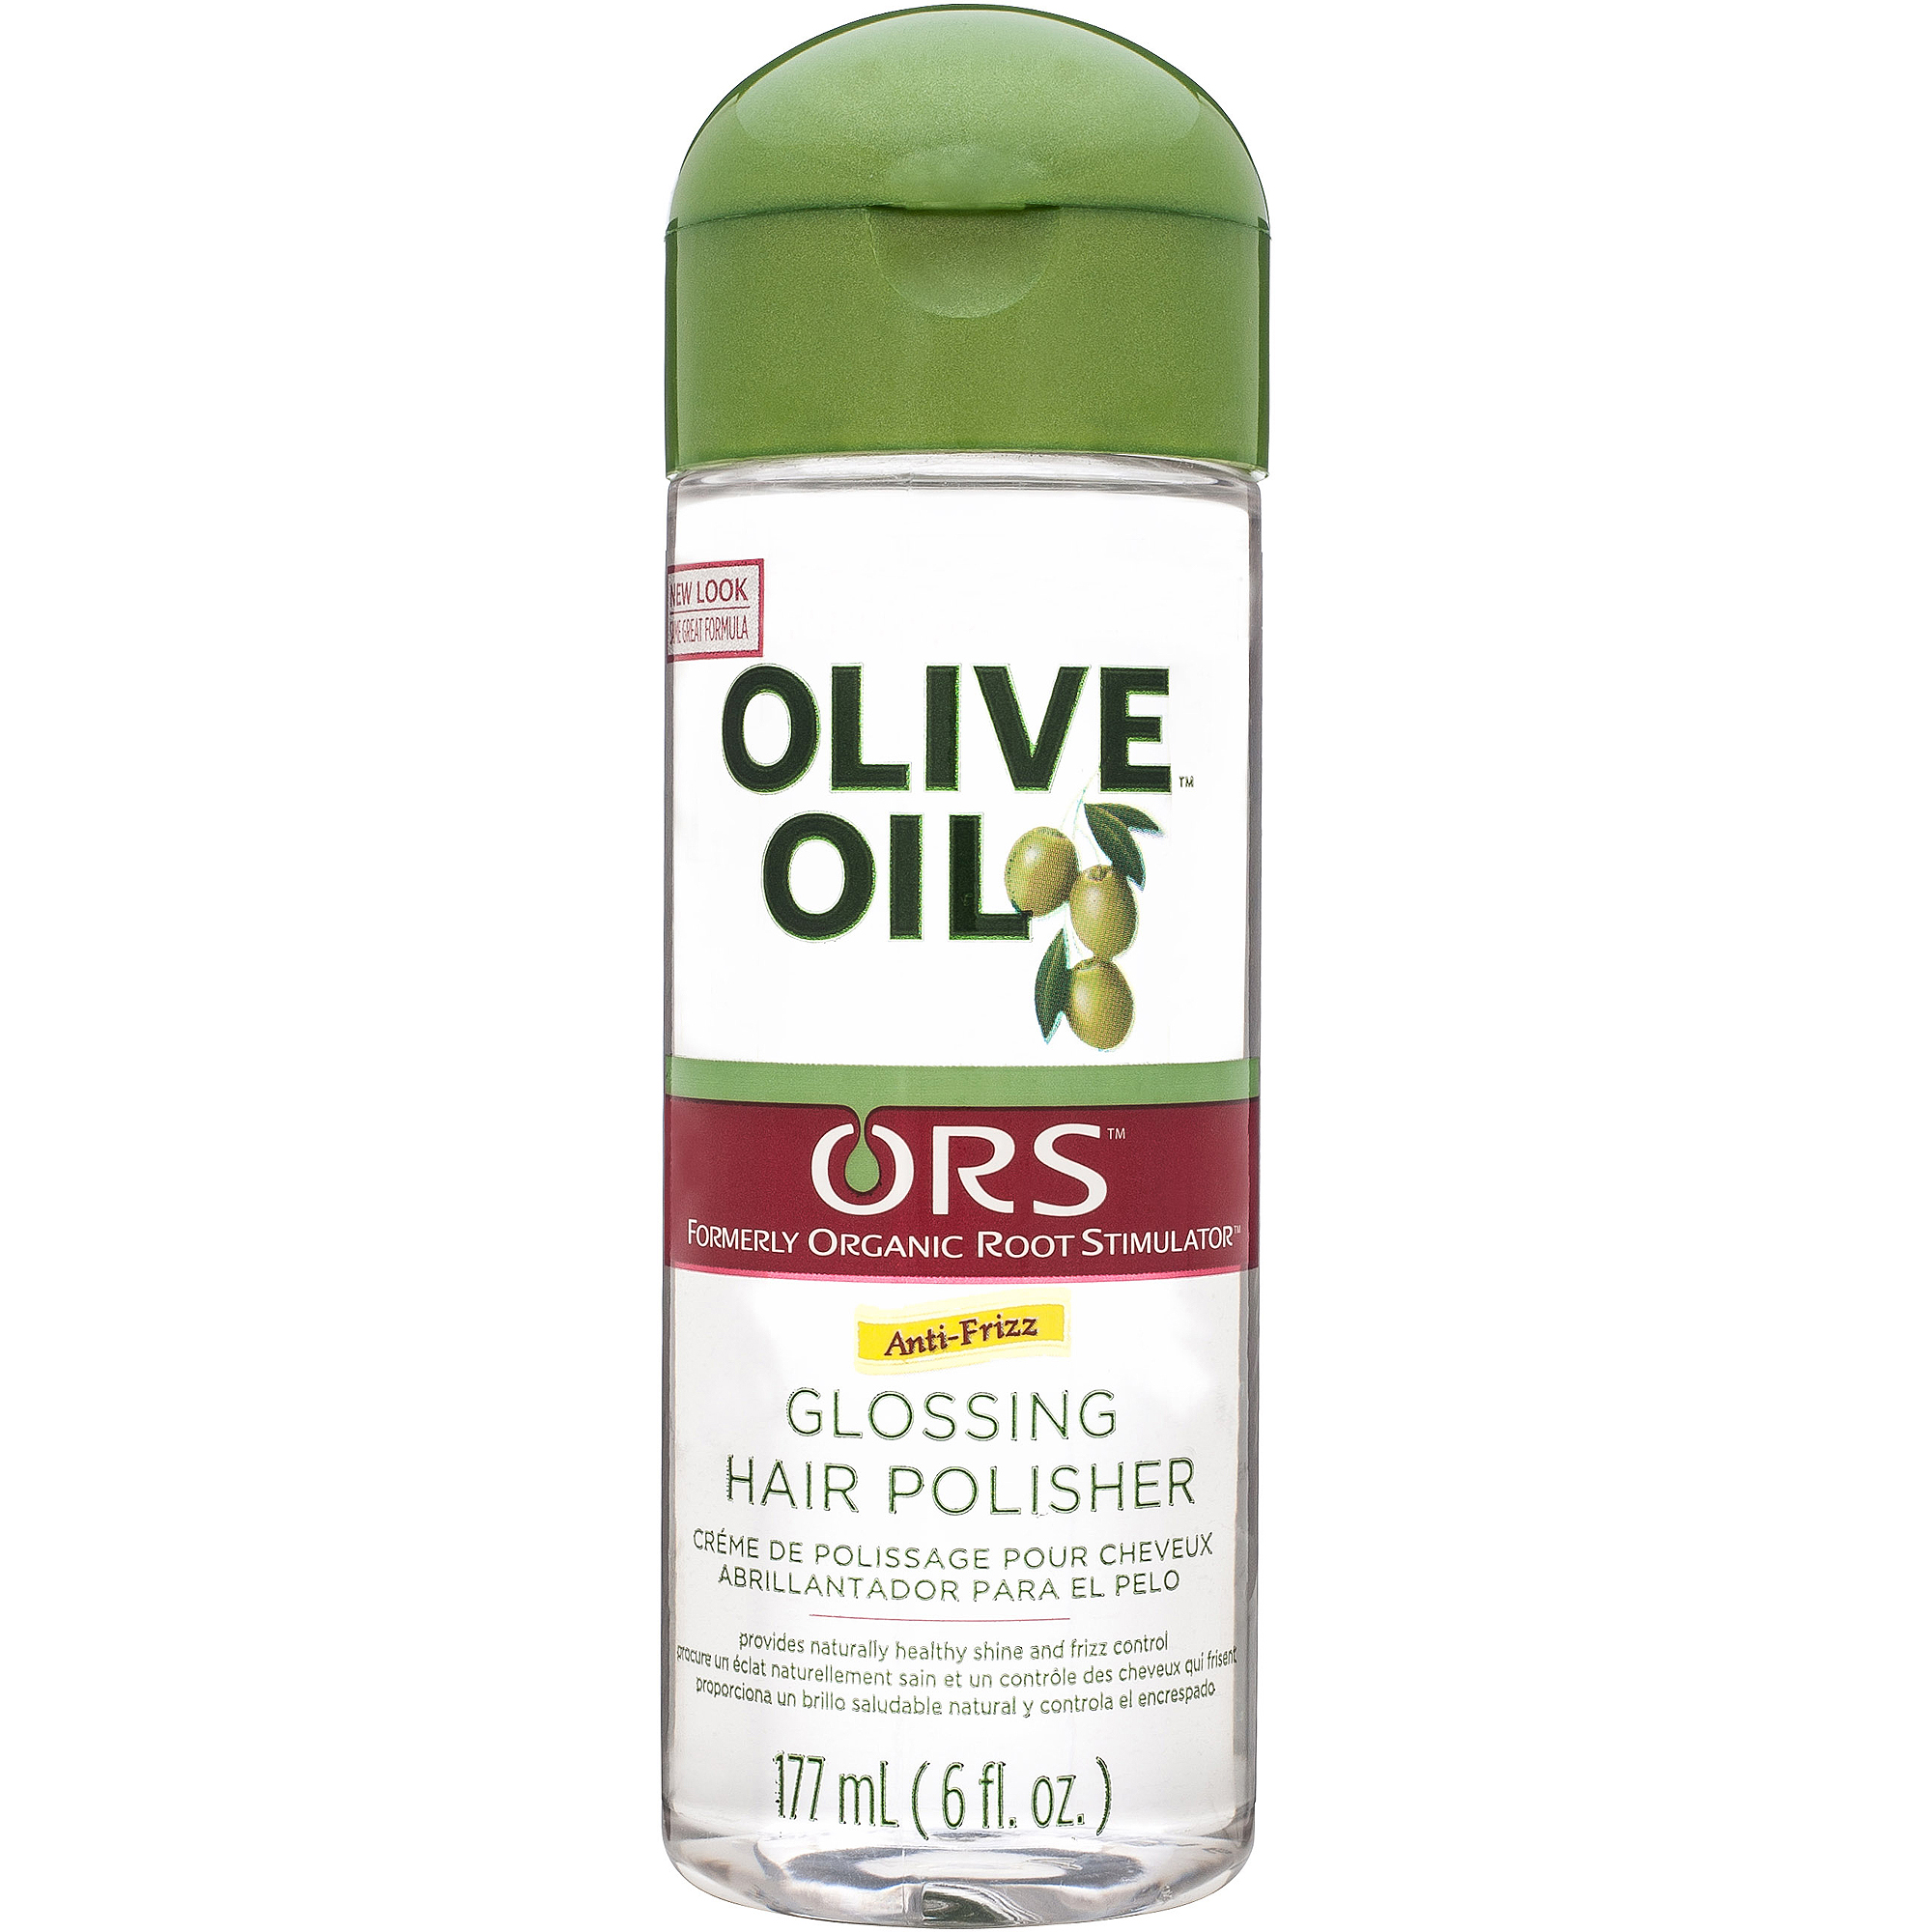 Organic Root Stimulator Olive Oil Glossing Polisher, 6 fl oz